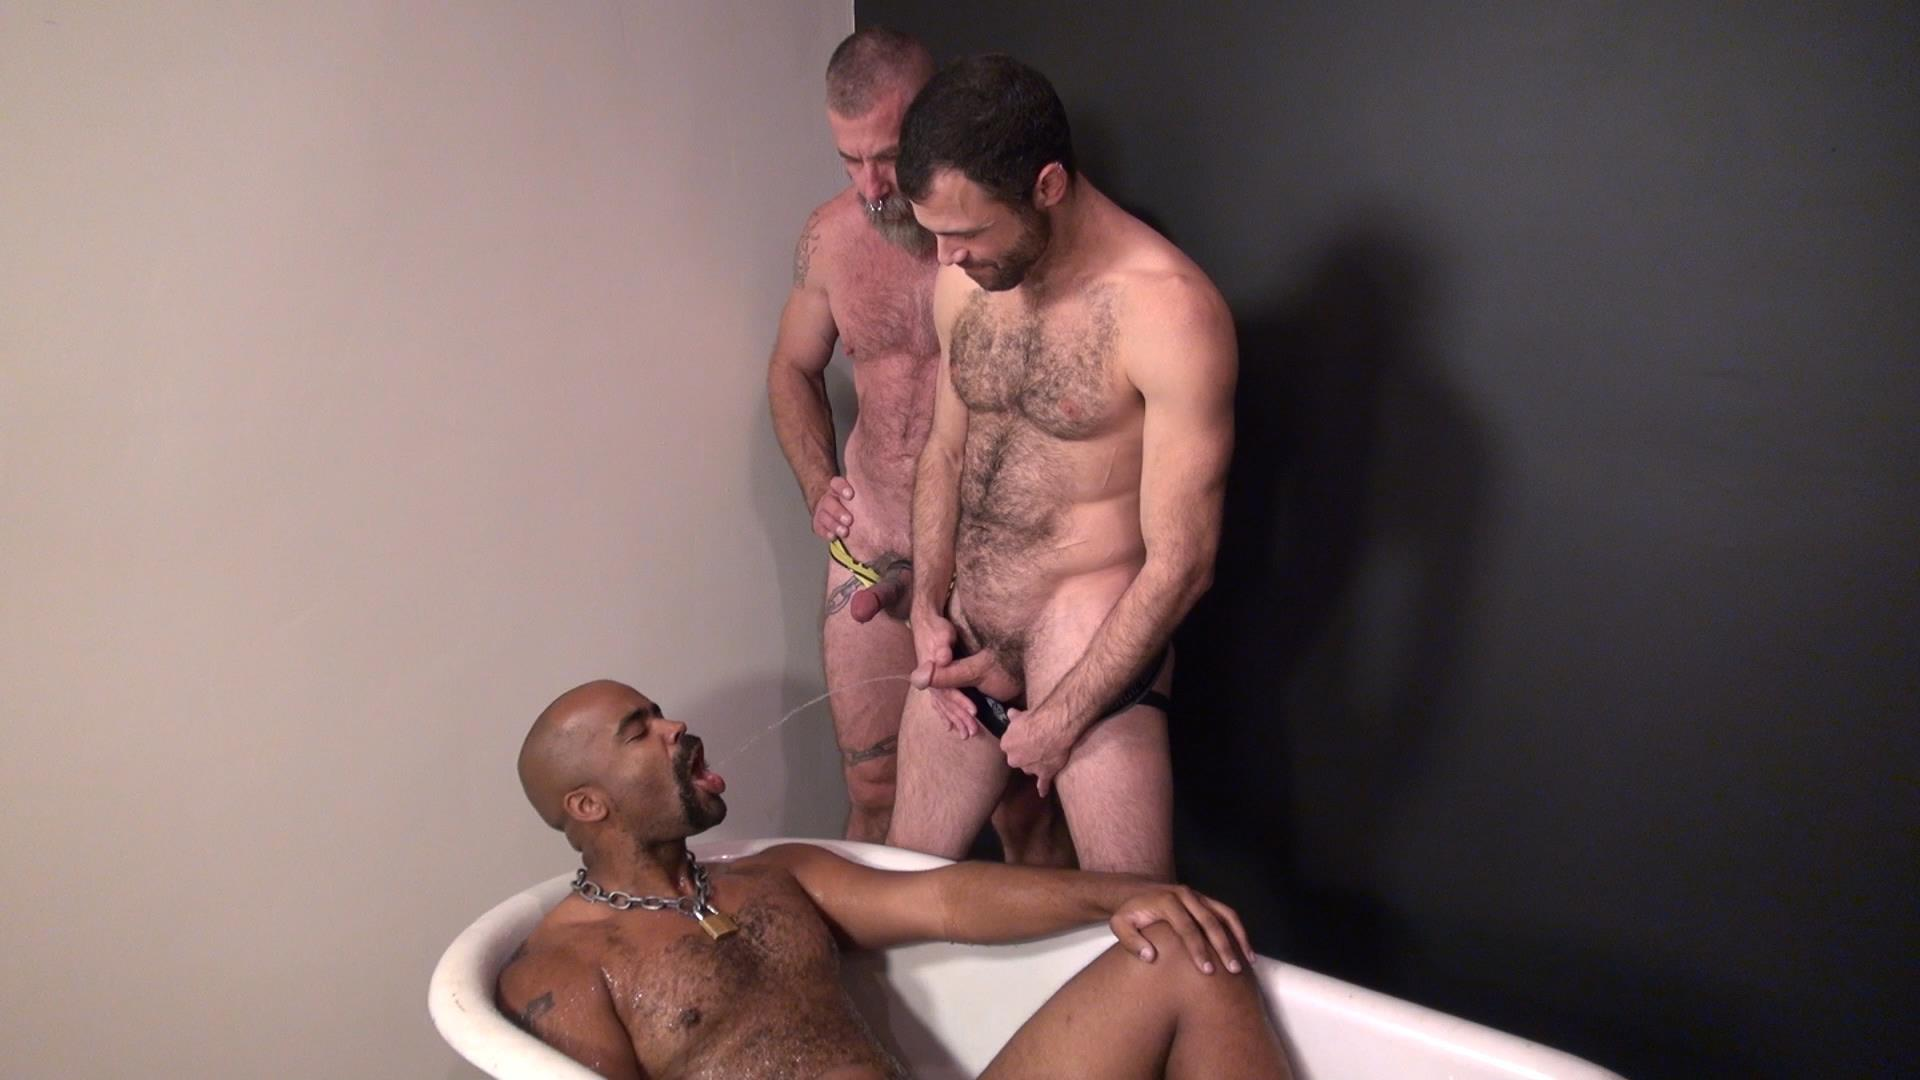 Raw-and-Rough-Jake-Wetmore-and-Dusty-Williams-and-Kid-Satyr-Bareback-Taking-Raw-Daddy-Loads-Cum-Amateur-Gay-Porn-01 Hairy Pup Taking Raw Interracial Daddy Loads Bareback